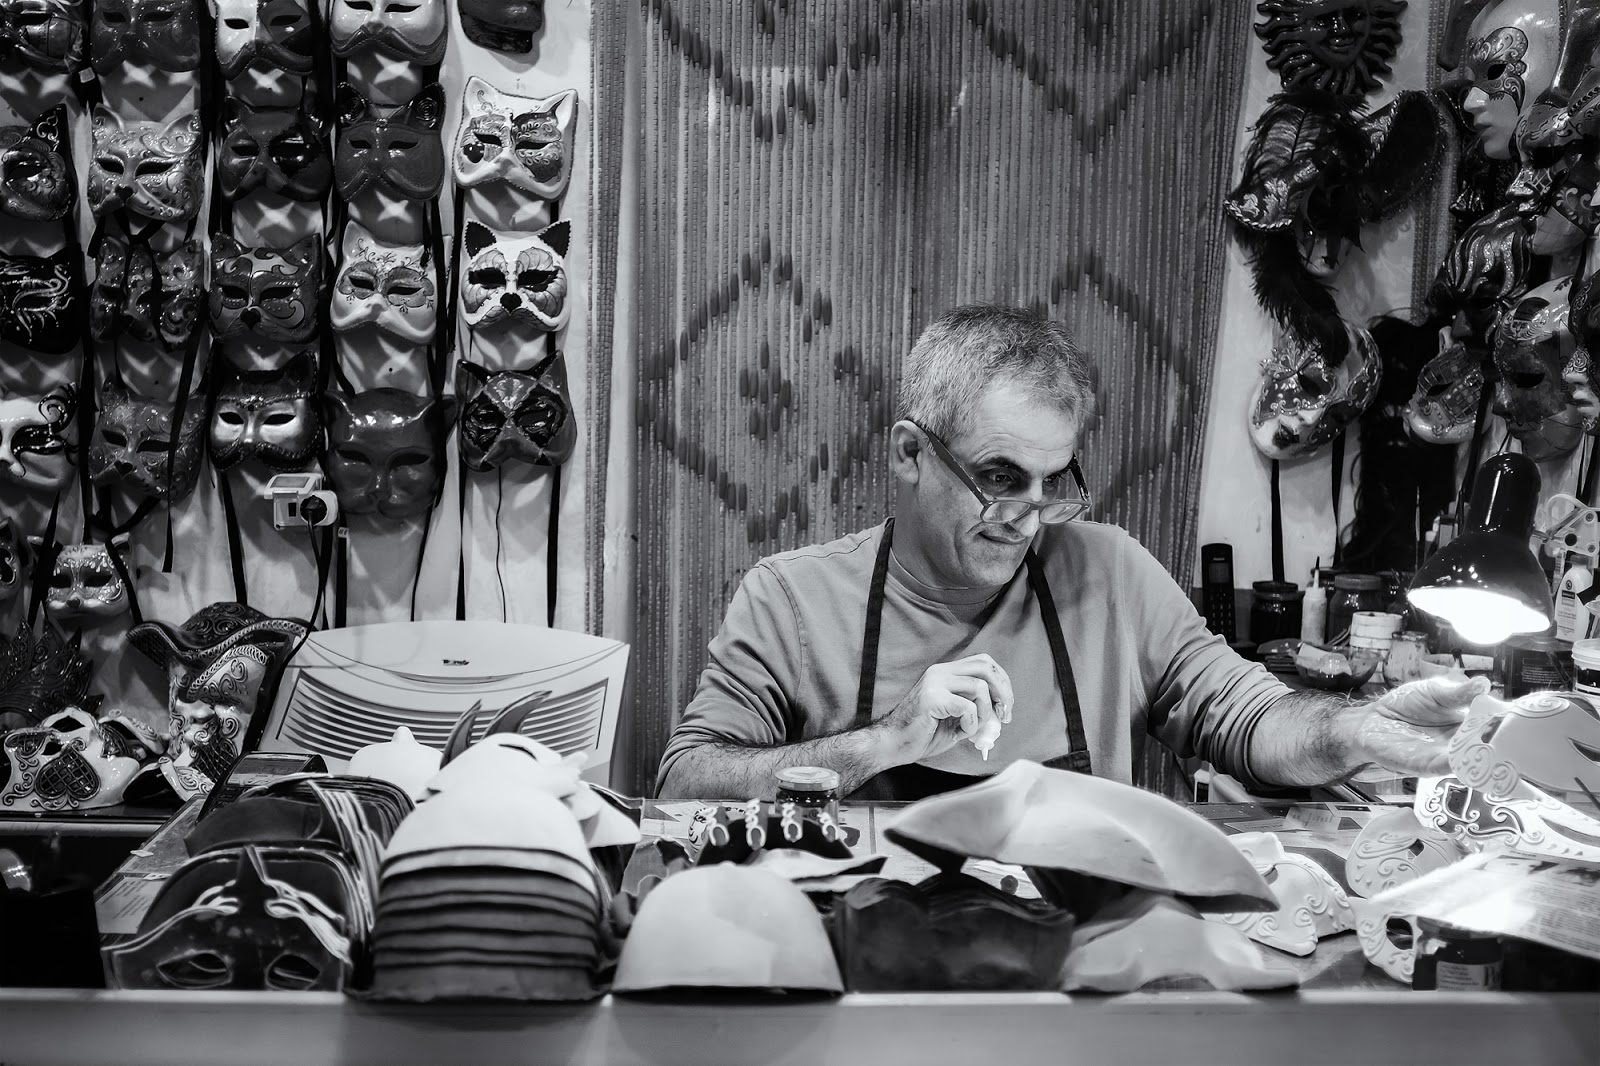 Fujifilm x100s image of a mask maker in Venice by willie kers